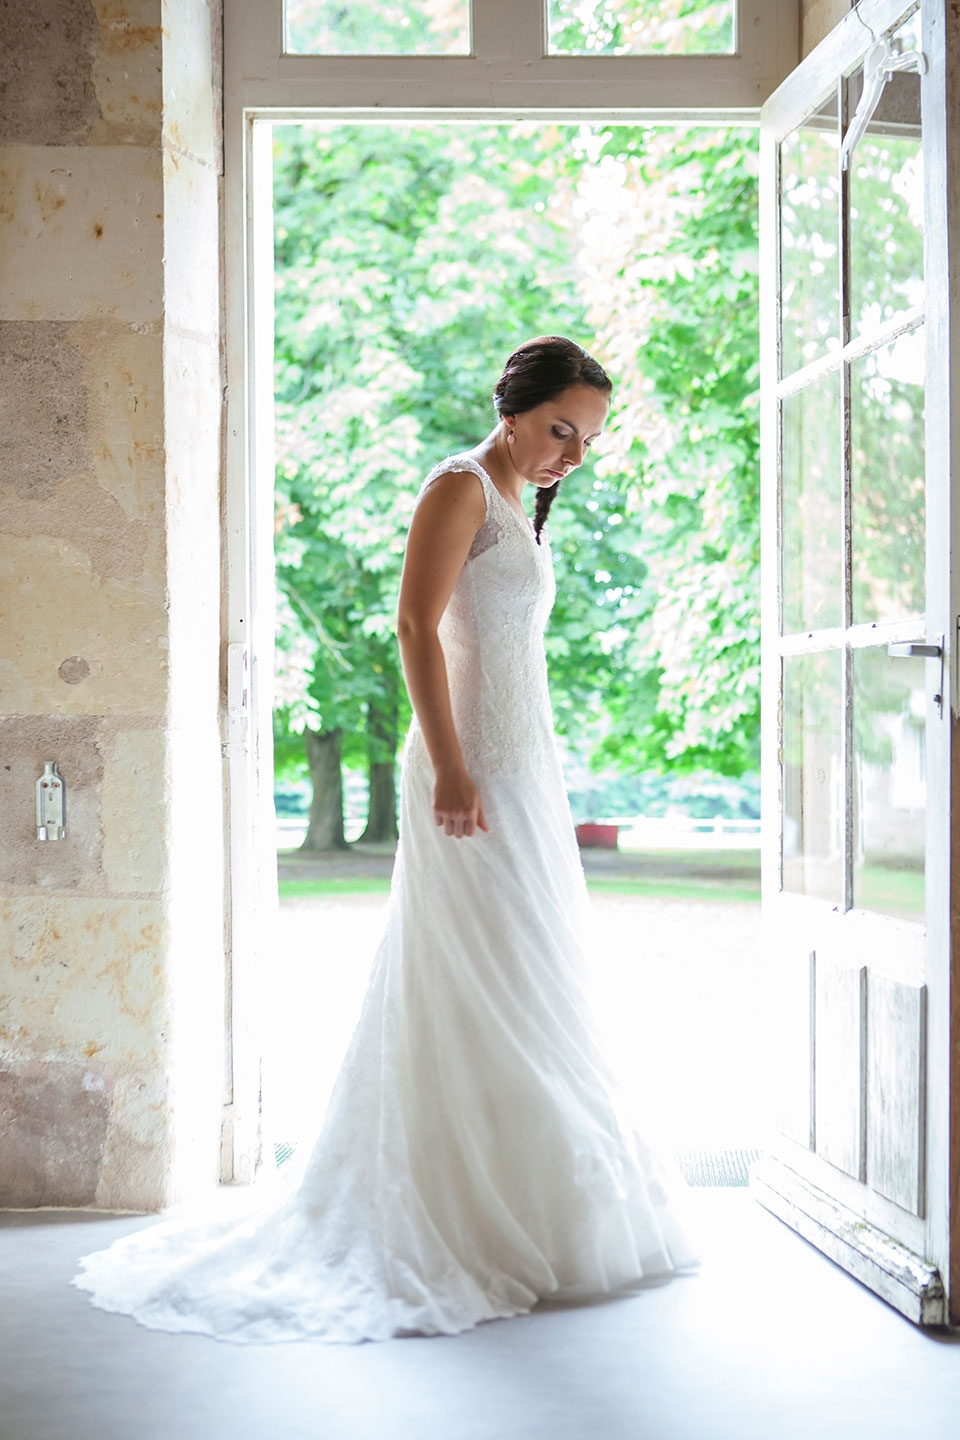 particuliers-evenements-mariage-oui-carla&jeremy-14